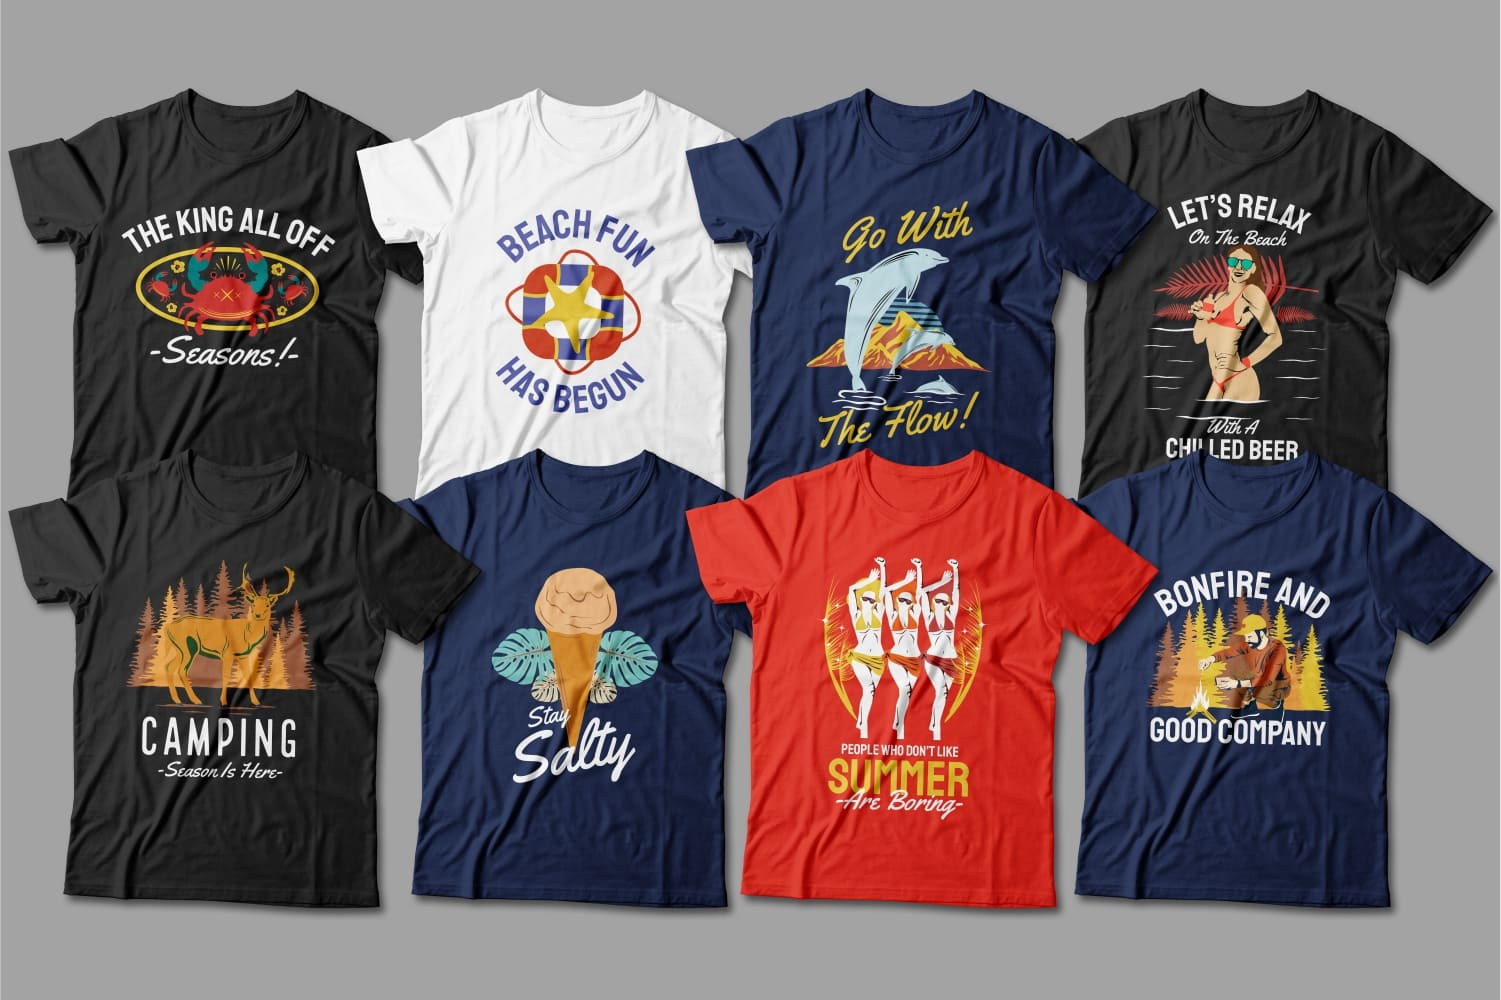 Summer T-shirts featuring happy people on vacation.